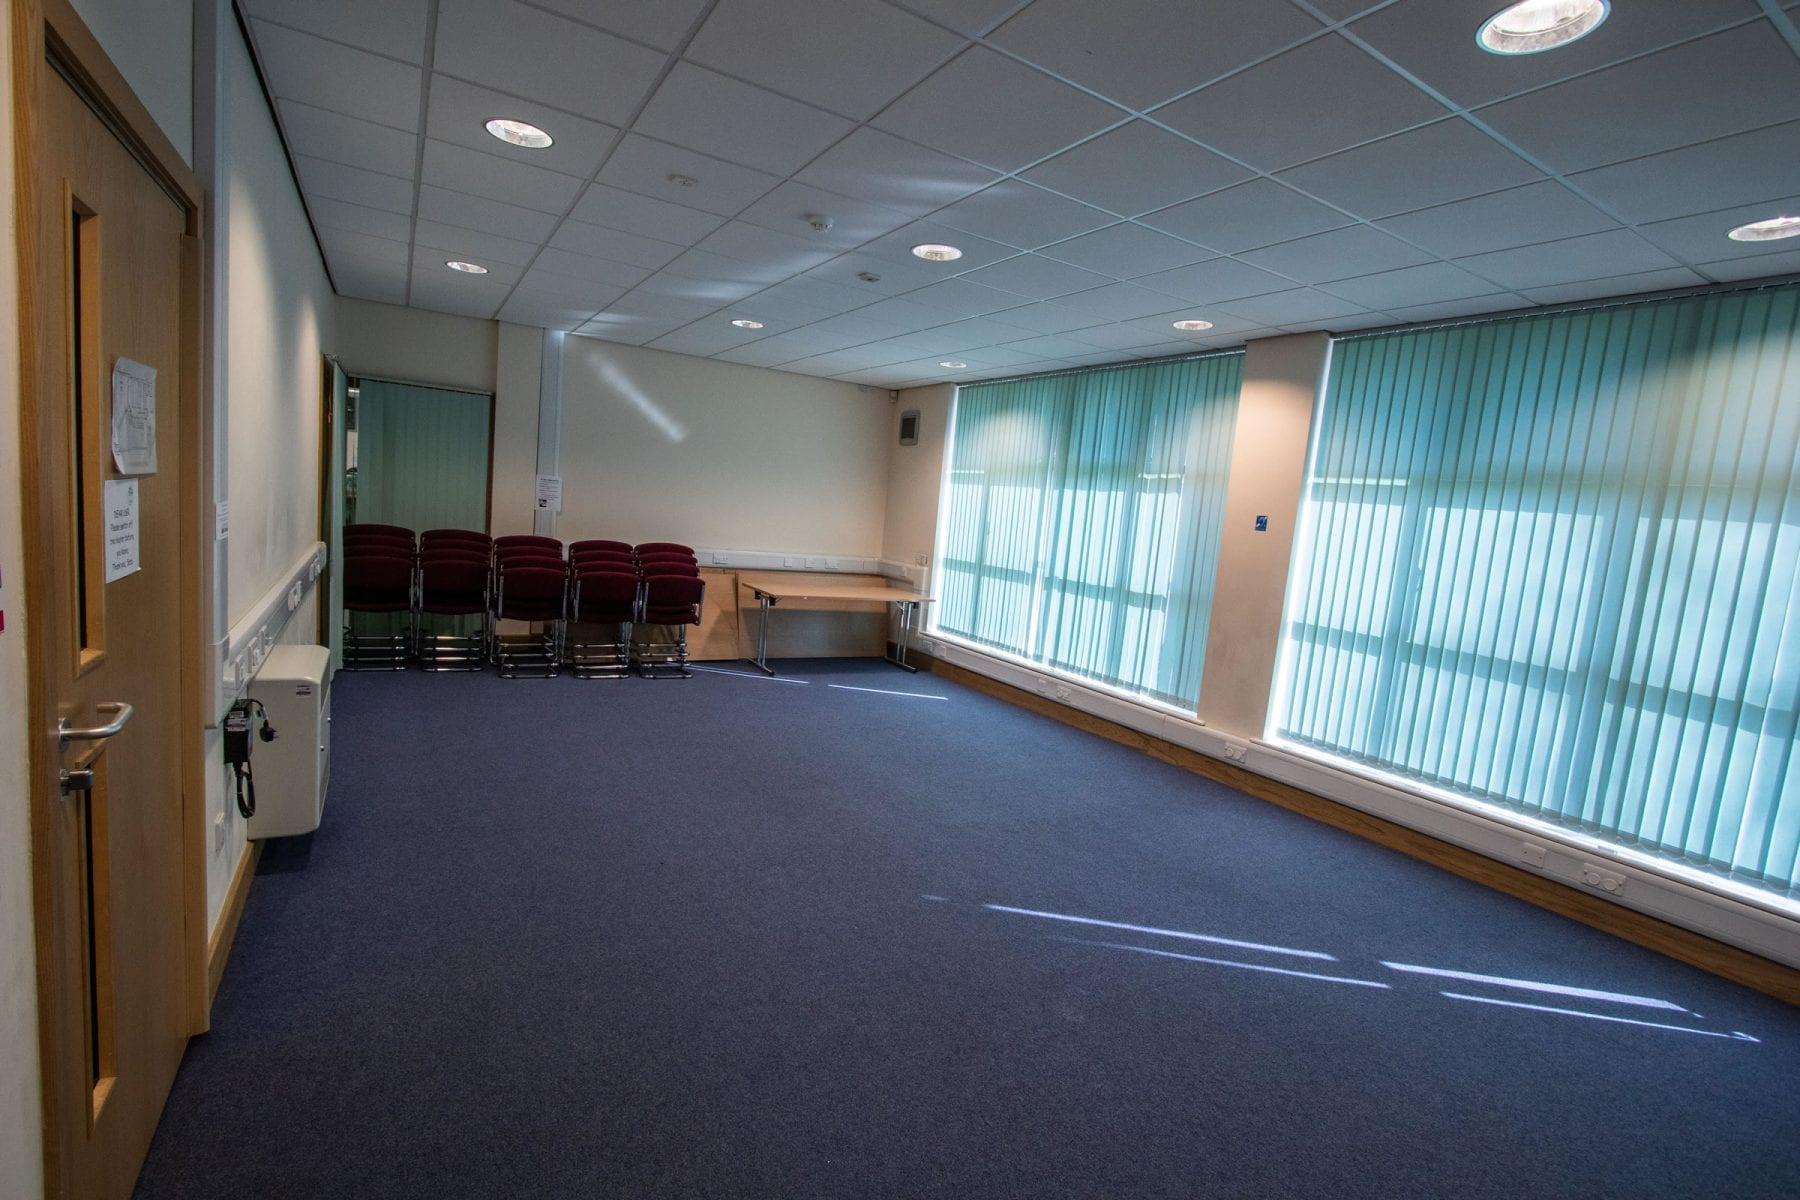 Meeting room in Brough Community Centre